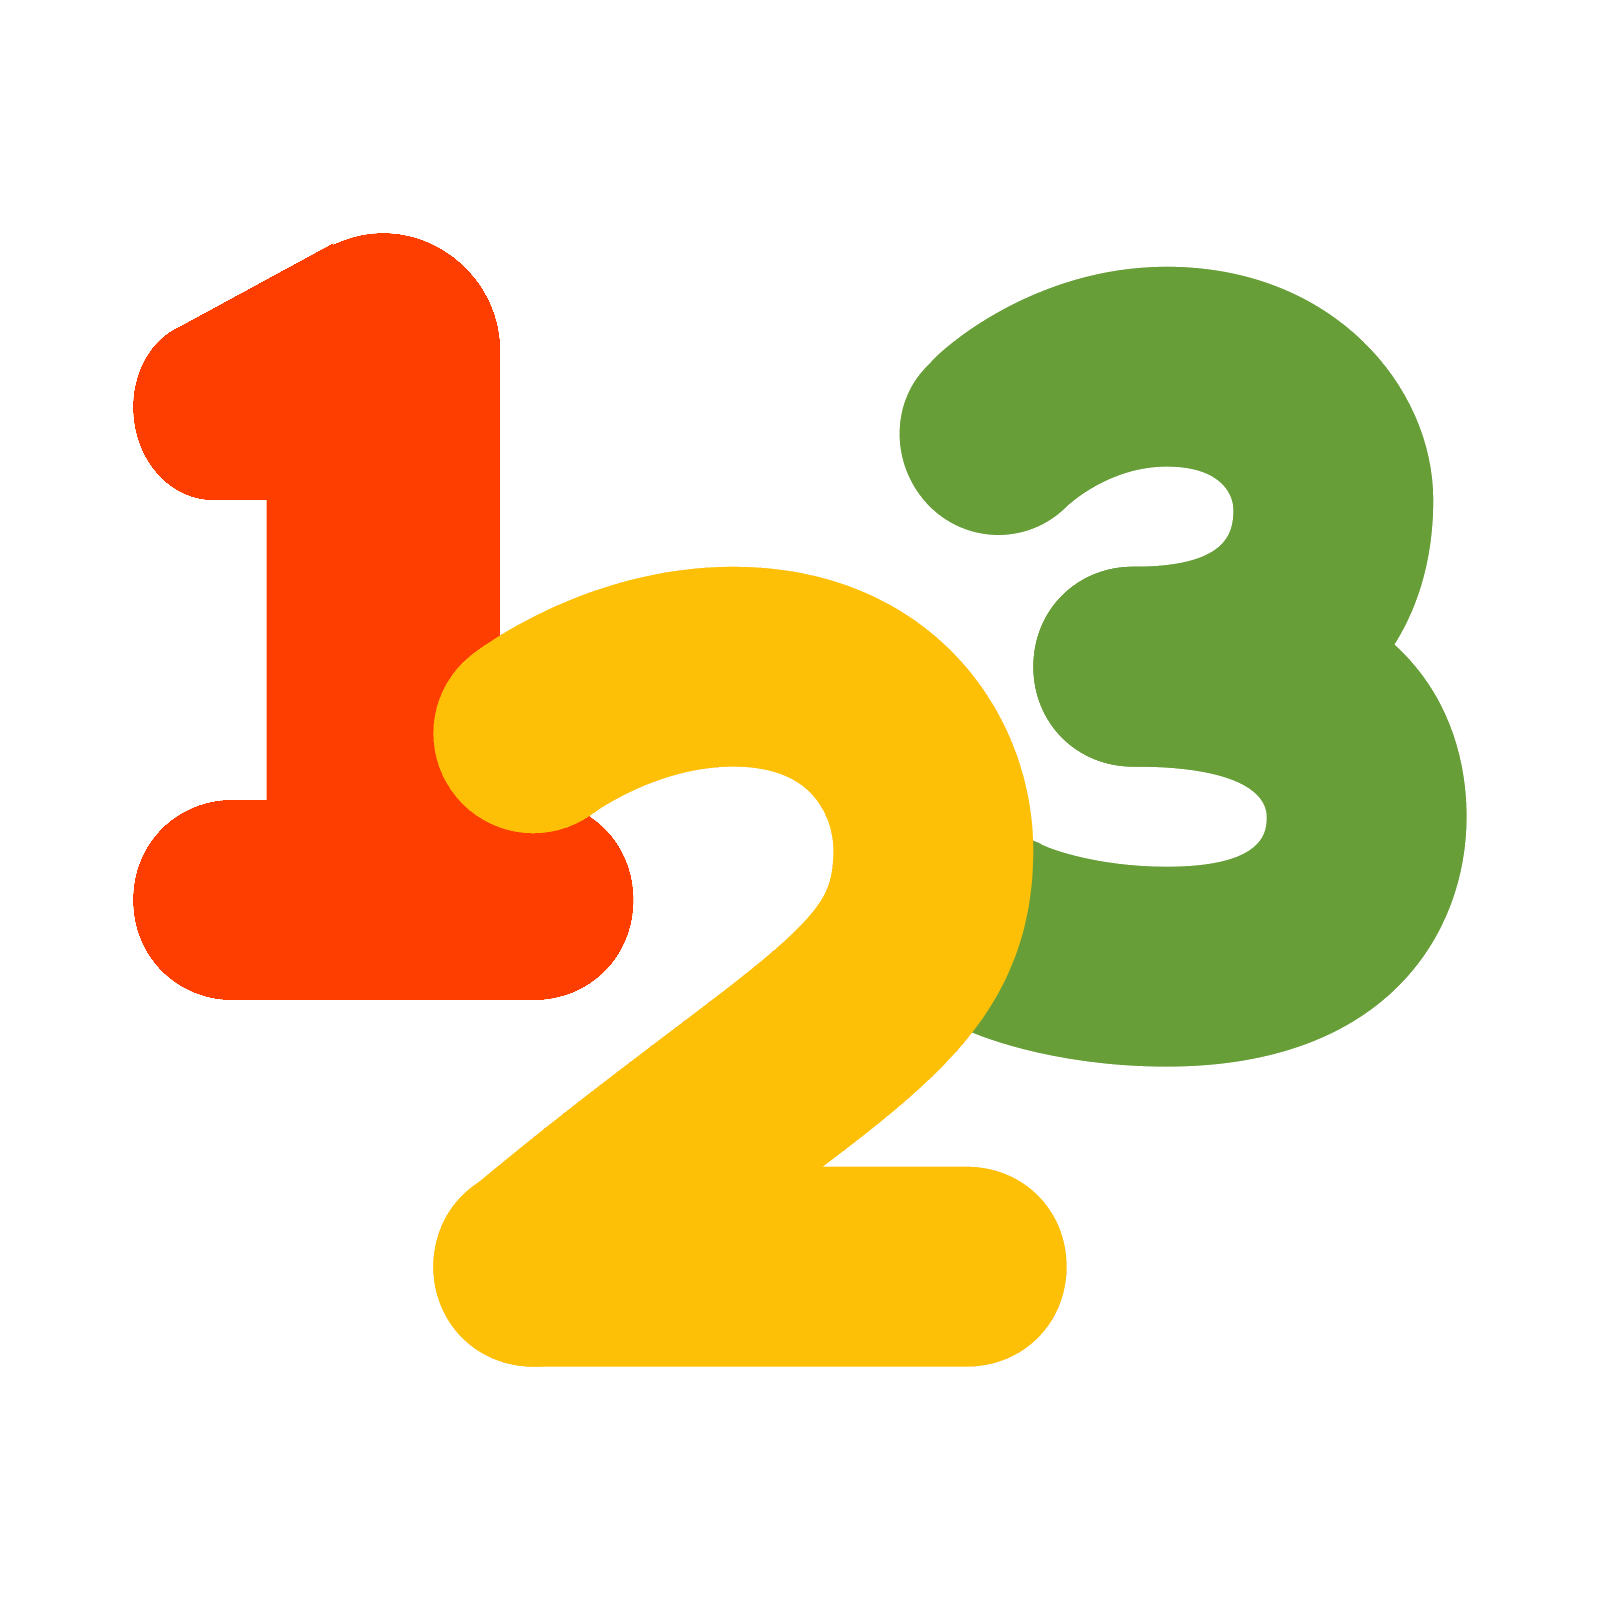 123 vector clipart. Free icon download digits